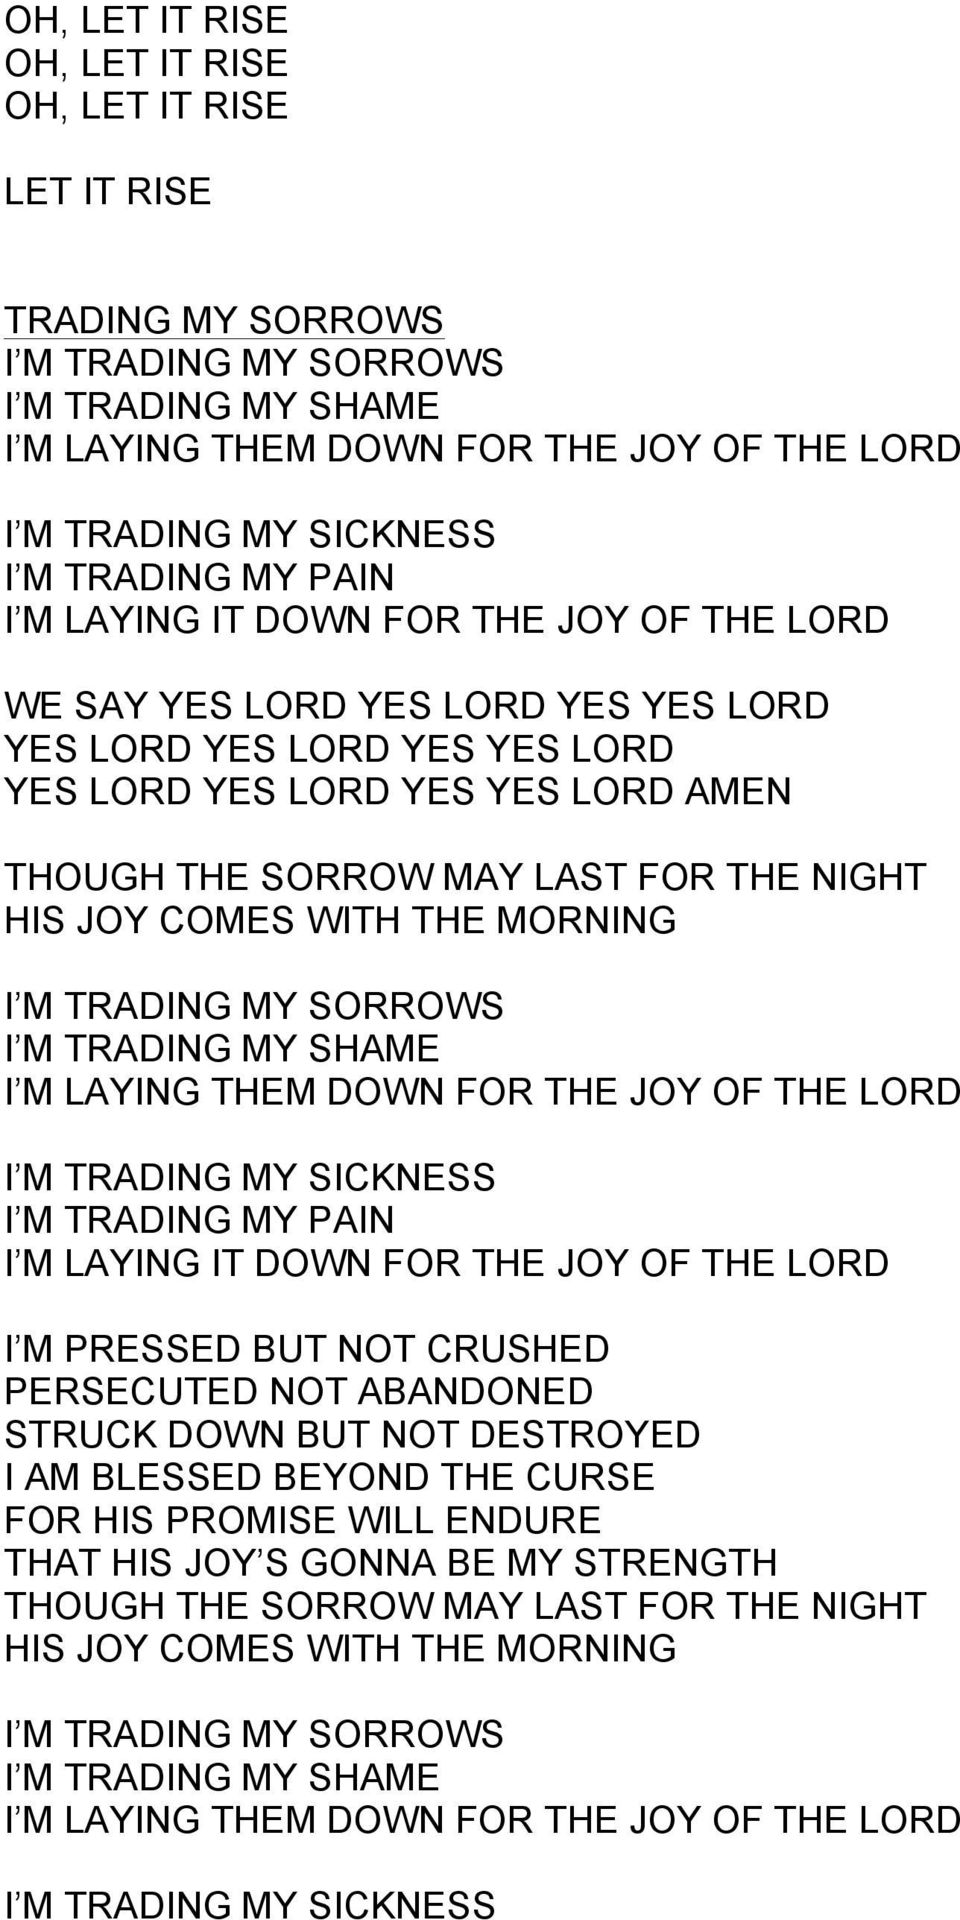 NIGHT HIS JOY COMES WITH THE MORNING I M TRADING MY SORROWS I M TRADING MY SHAME I M LAYING THEM DOWN FOR THE JOY OF THE LORD I M TRADING MY SICKNESS I M TRADING MY PAIN I M LAYING IT DOWN FOR THE